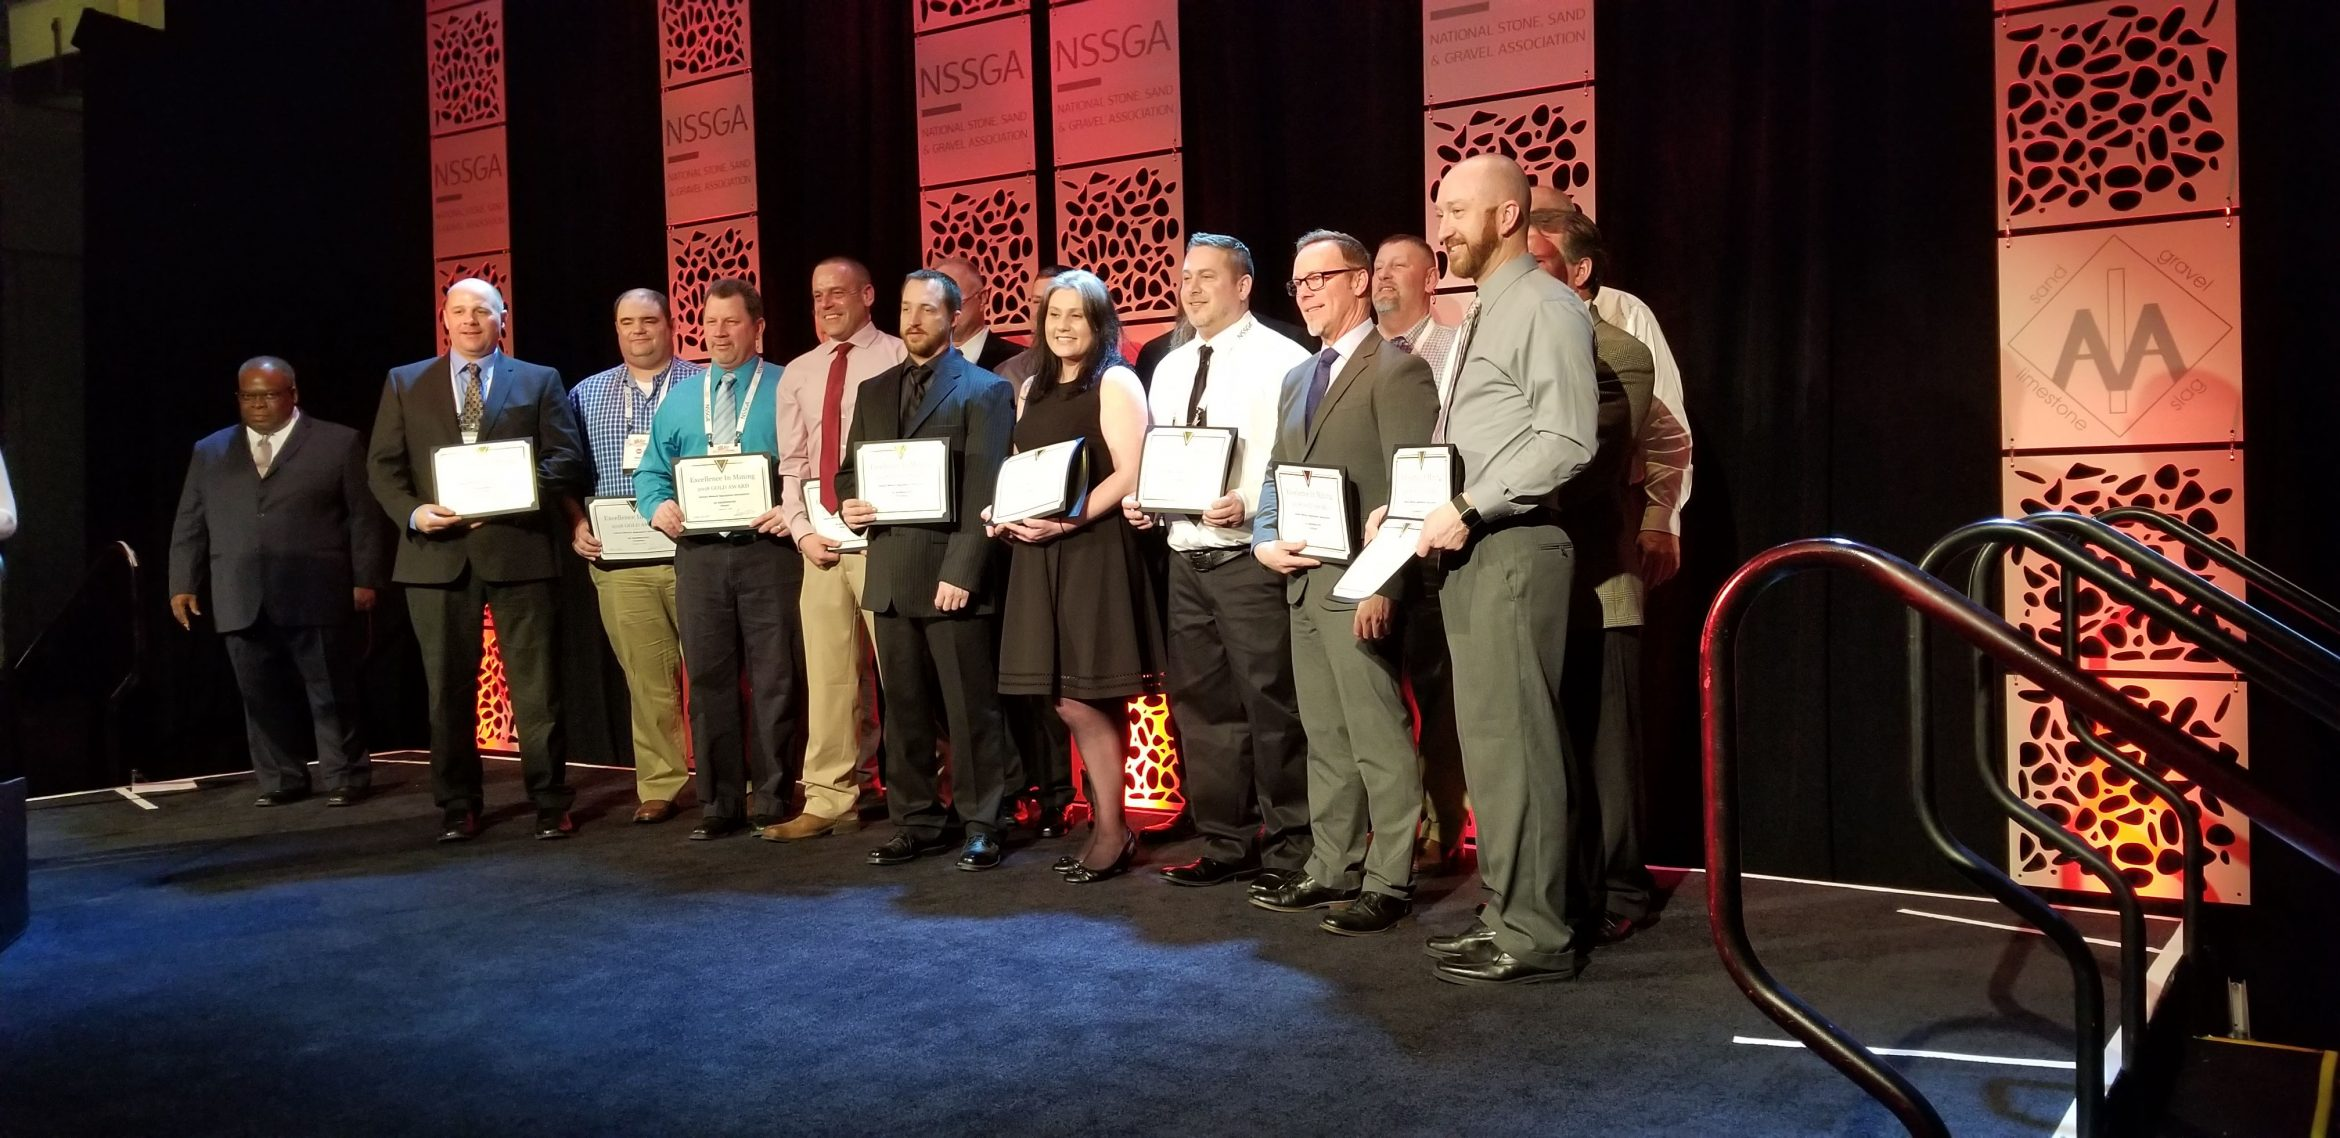 Excellence in Mining award 2018